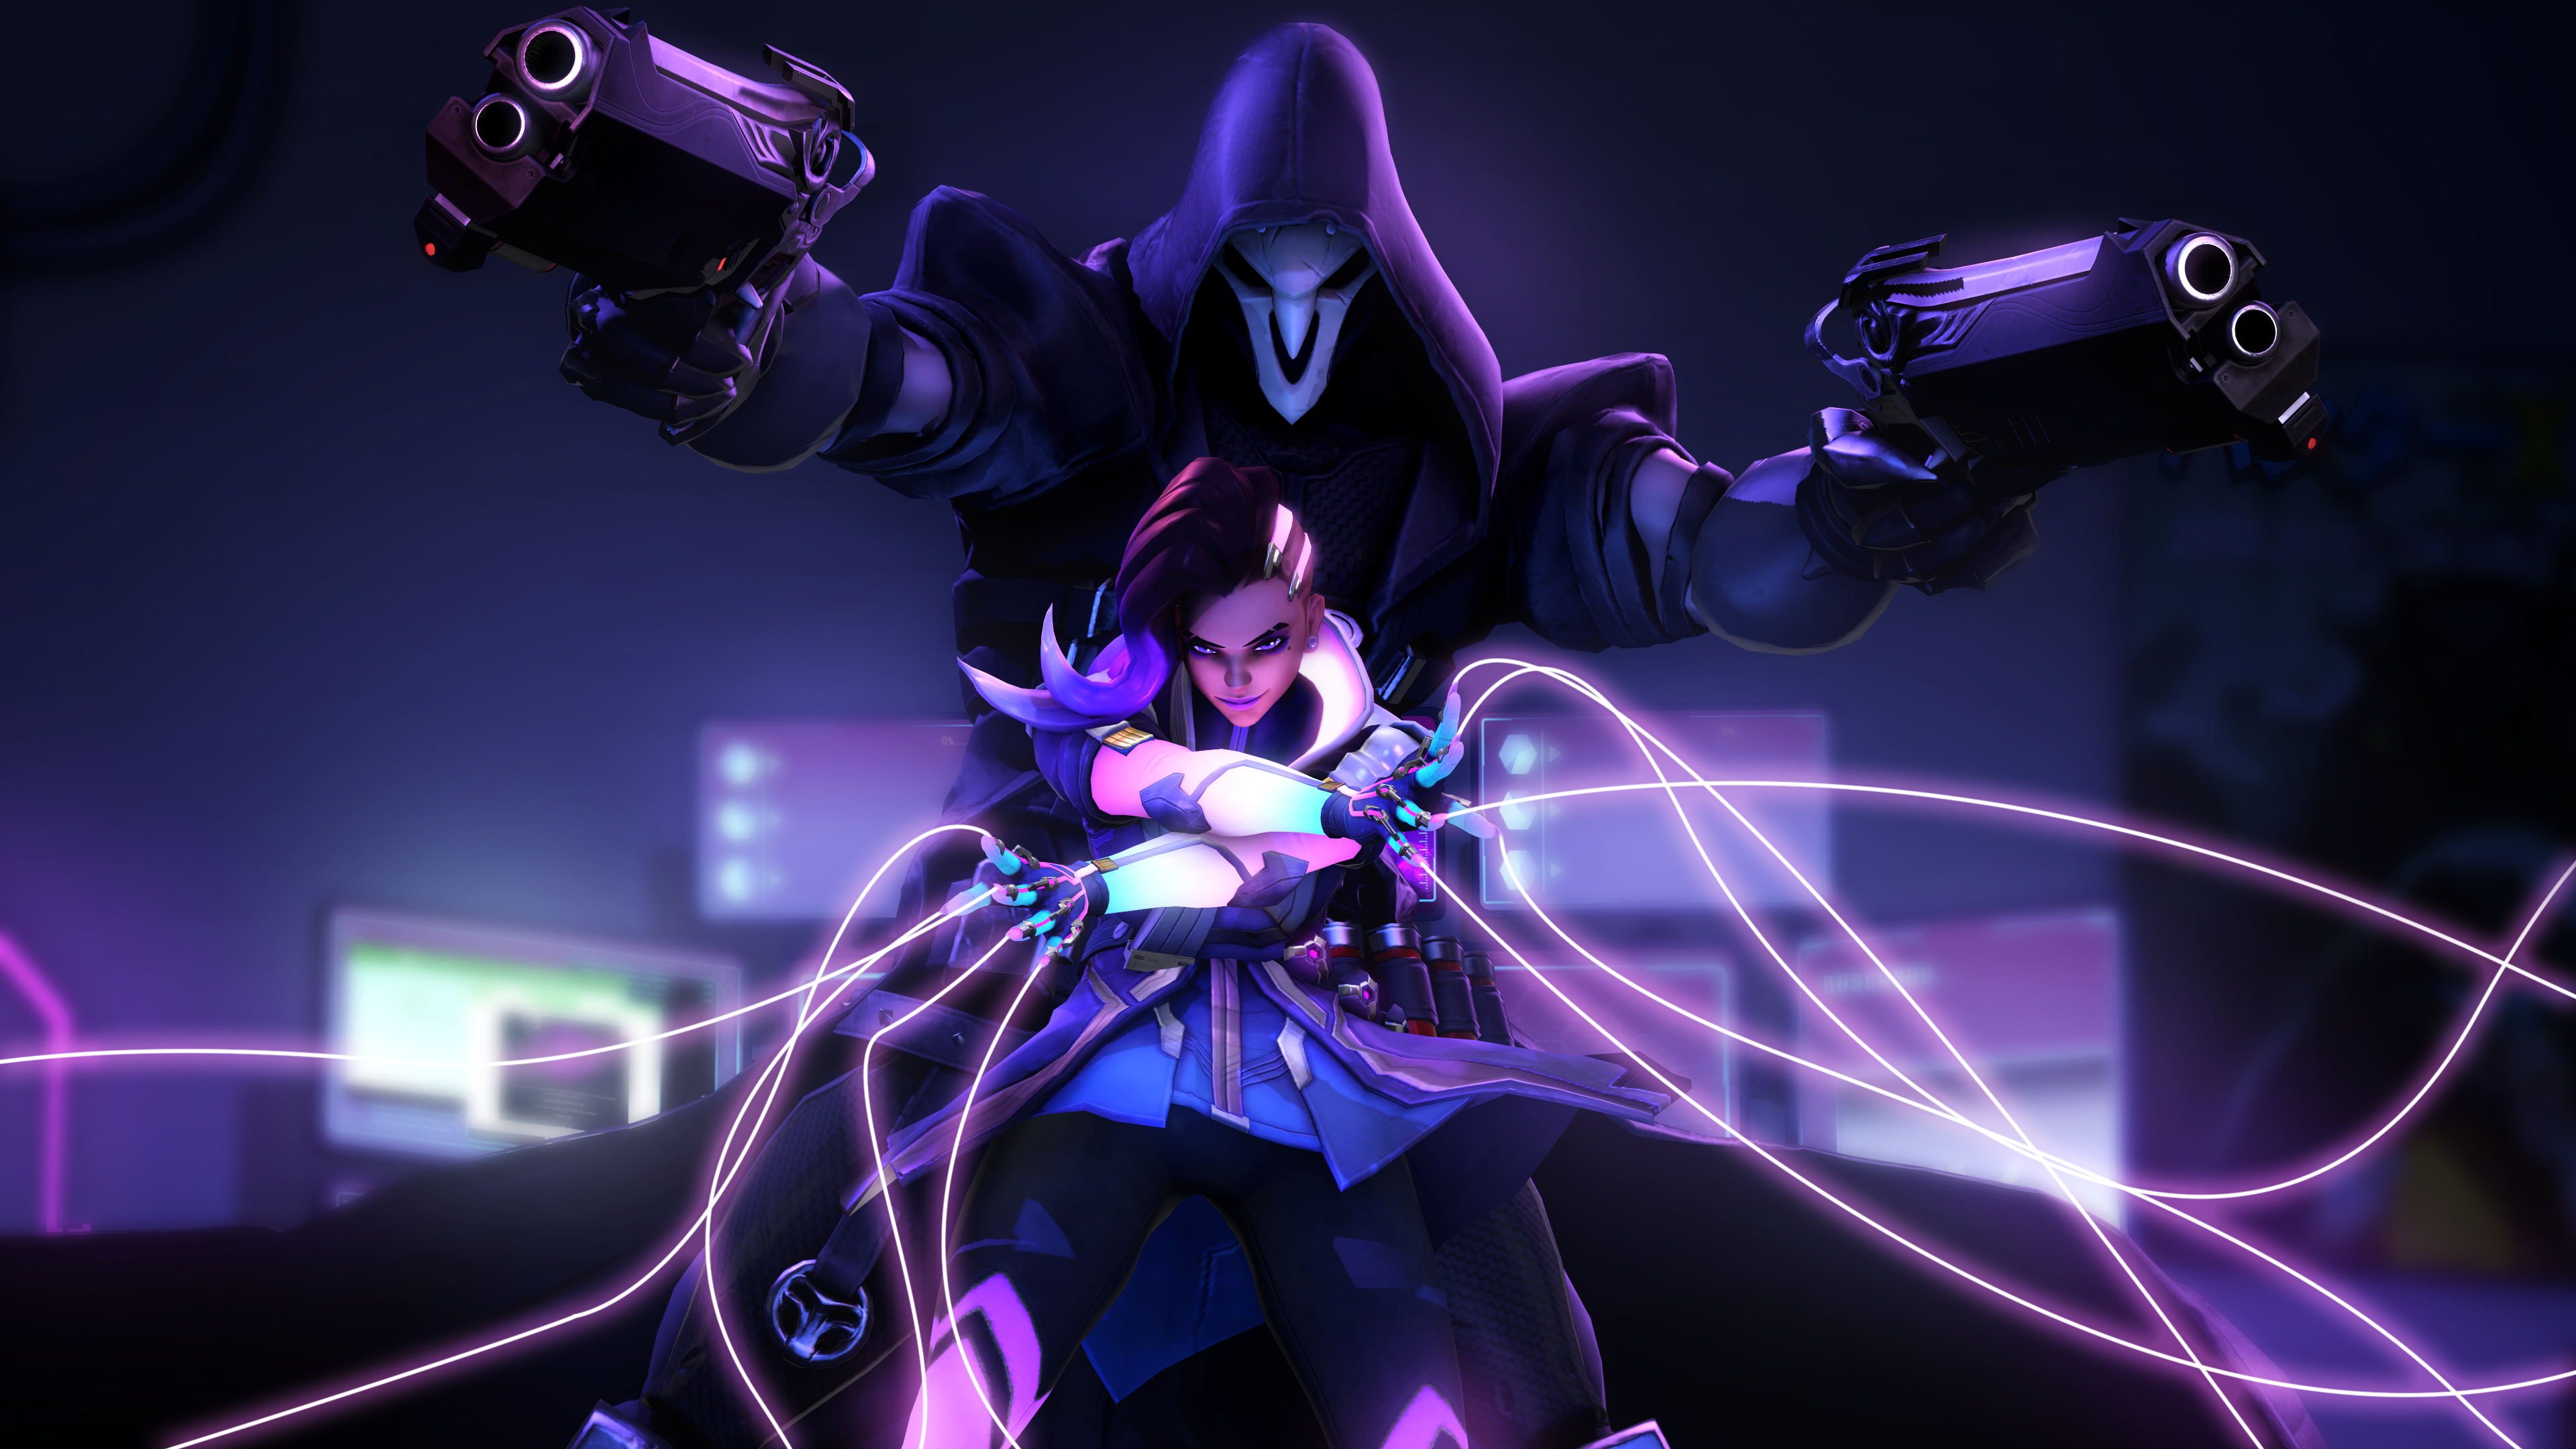 Sombra Reaper Overwatch 4k Wallpaper Hd Games 4k Wallpapers